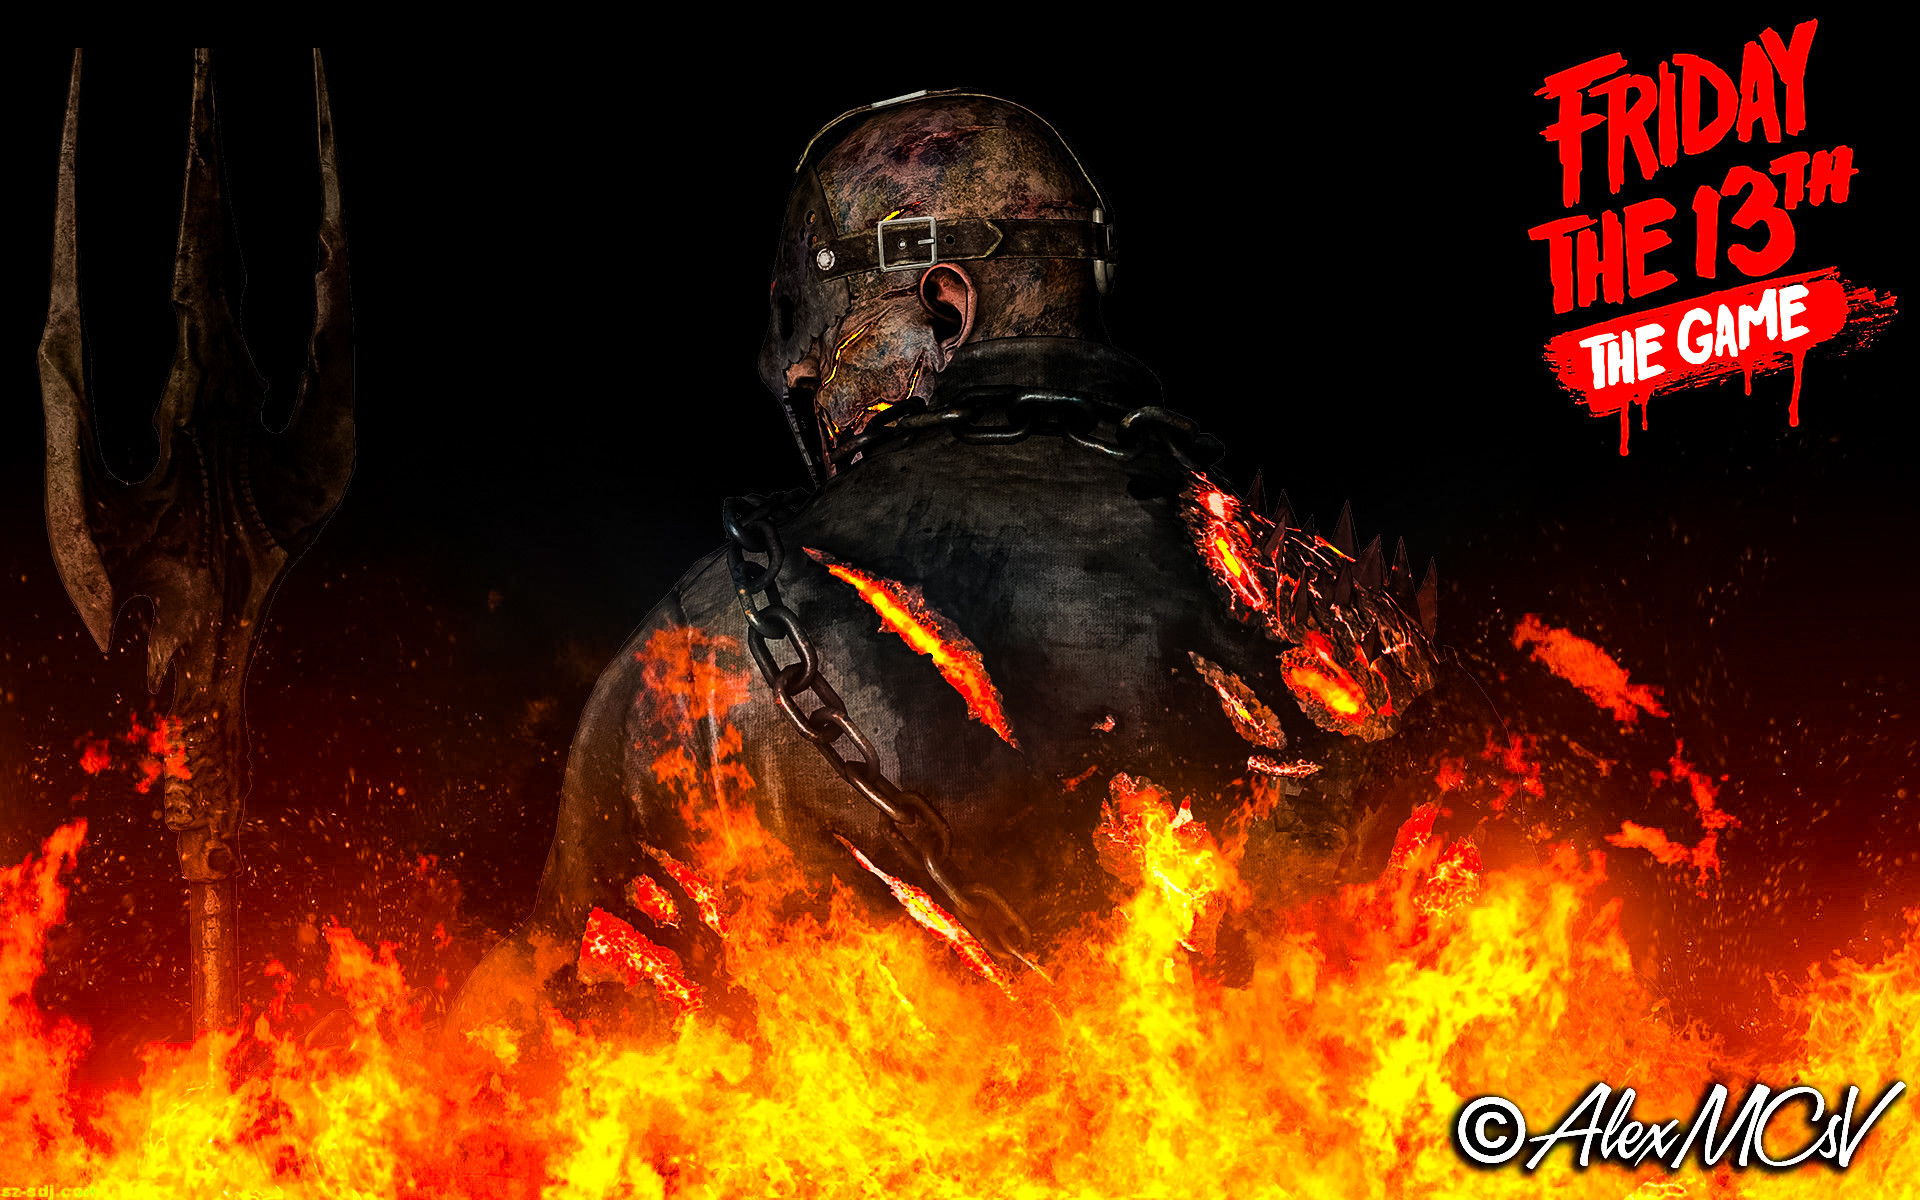 1920x1200 1920x1080 Friday the 13th The Game HD Images 1 whb  #Fridaythe13thTheGameHDImages #Fridaythe13thTheGame #games #